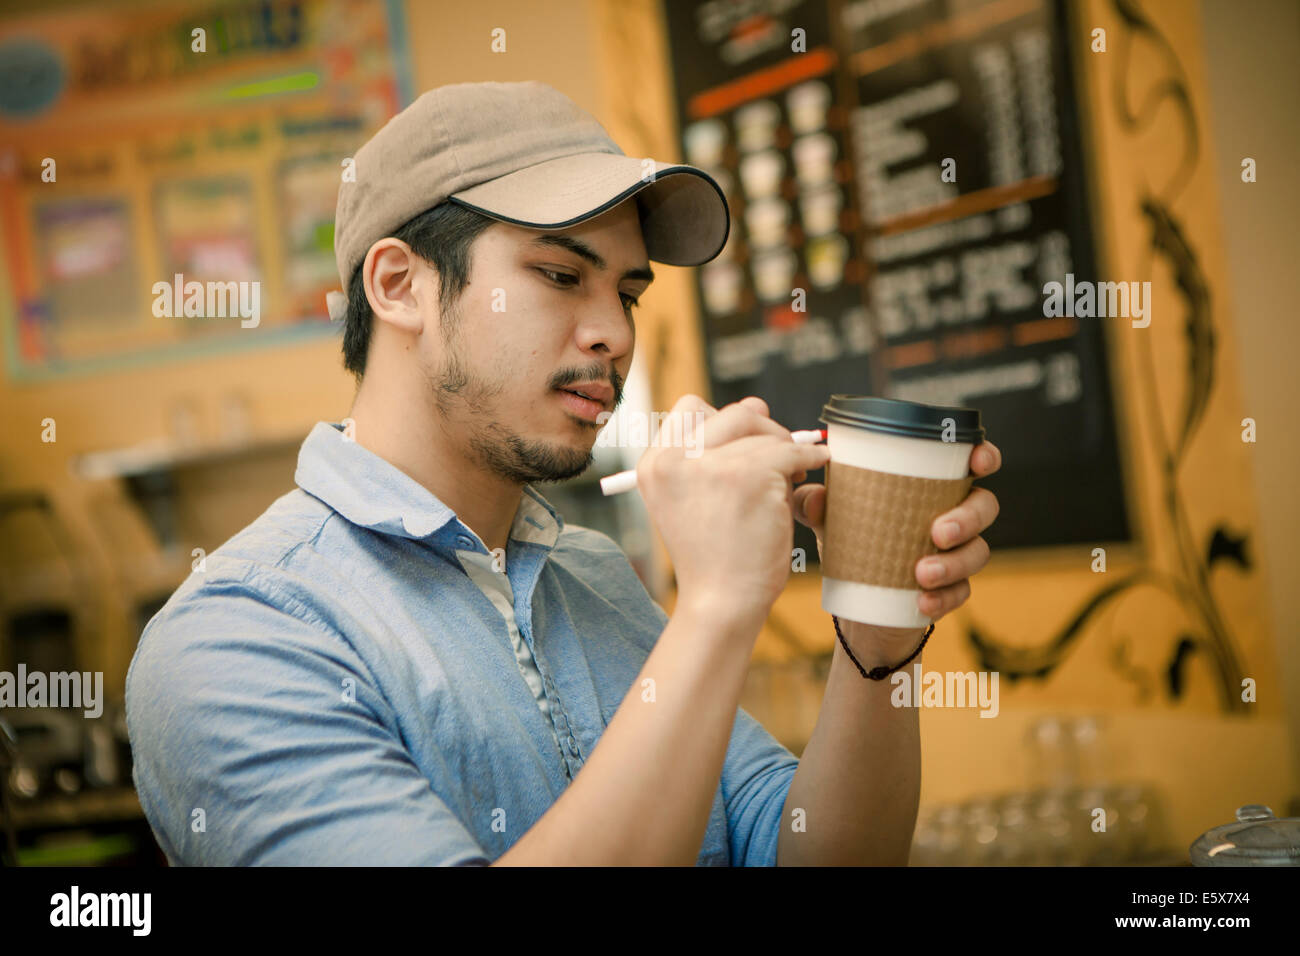 Barista writing on disposable cup in cafe - Stock Image